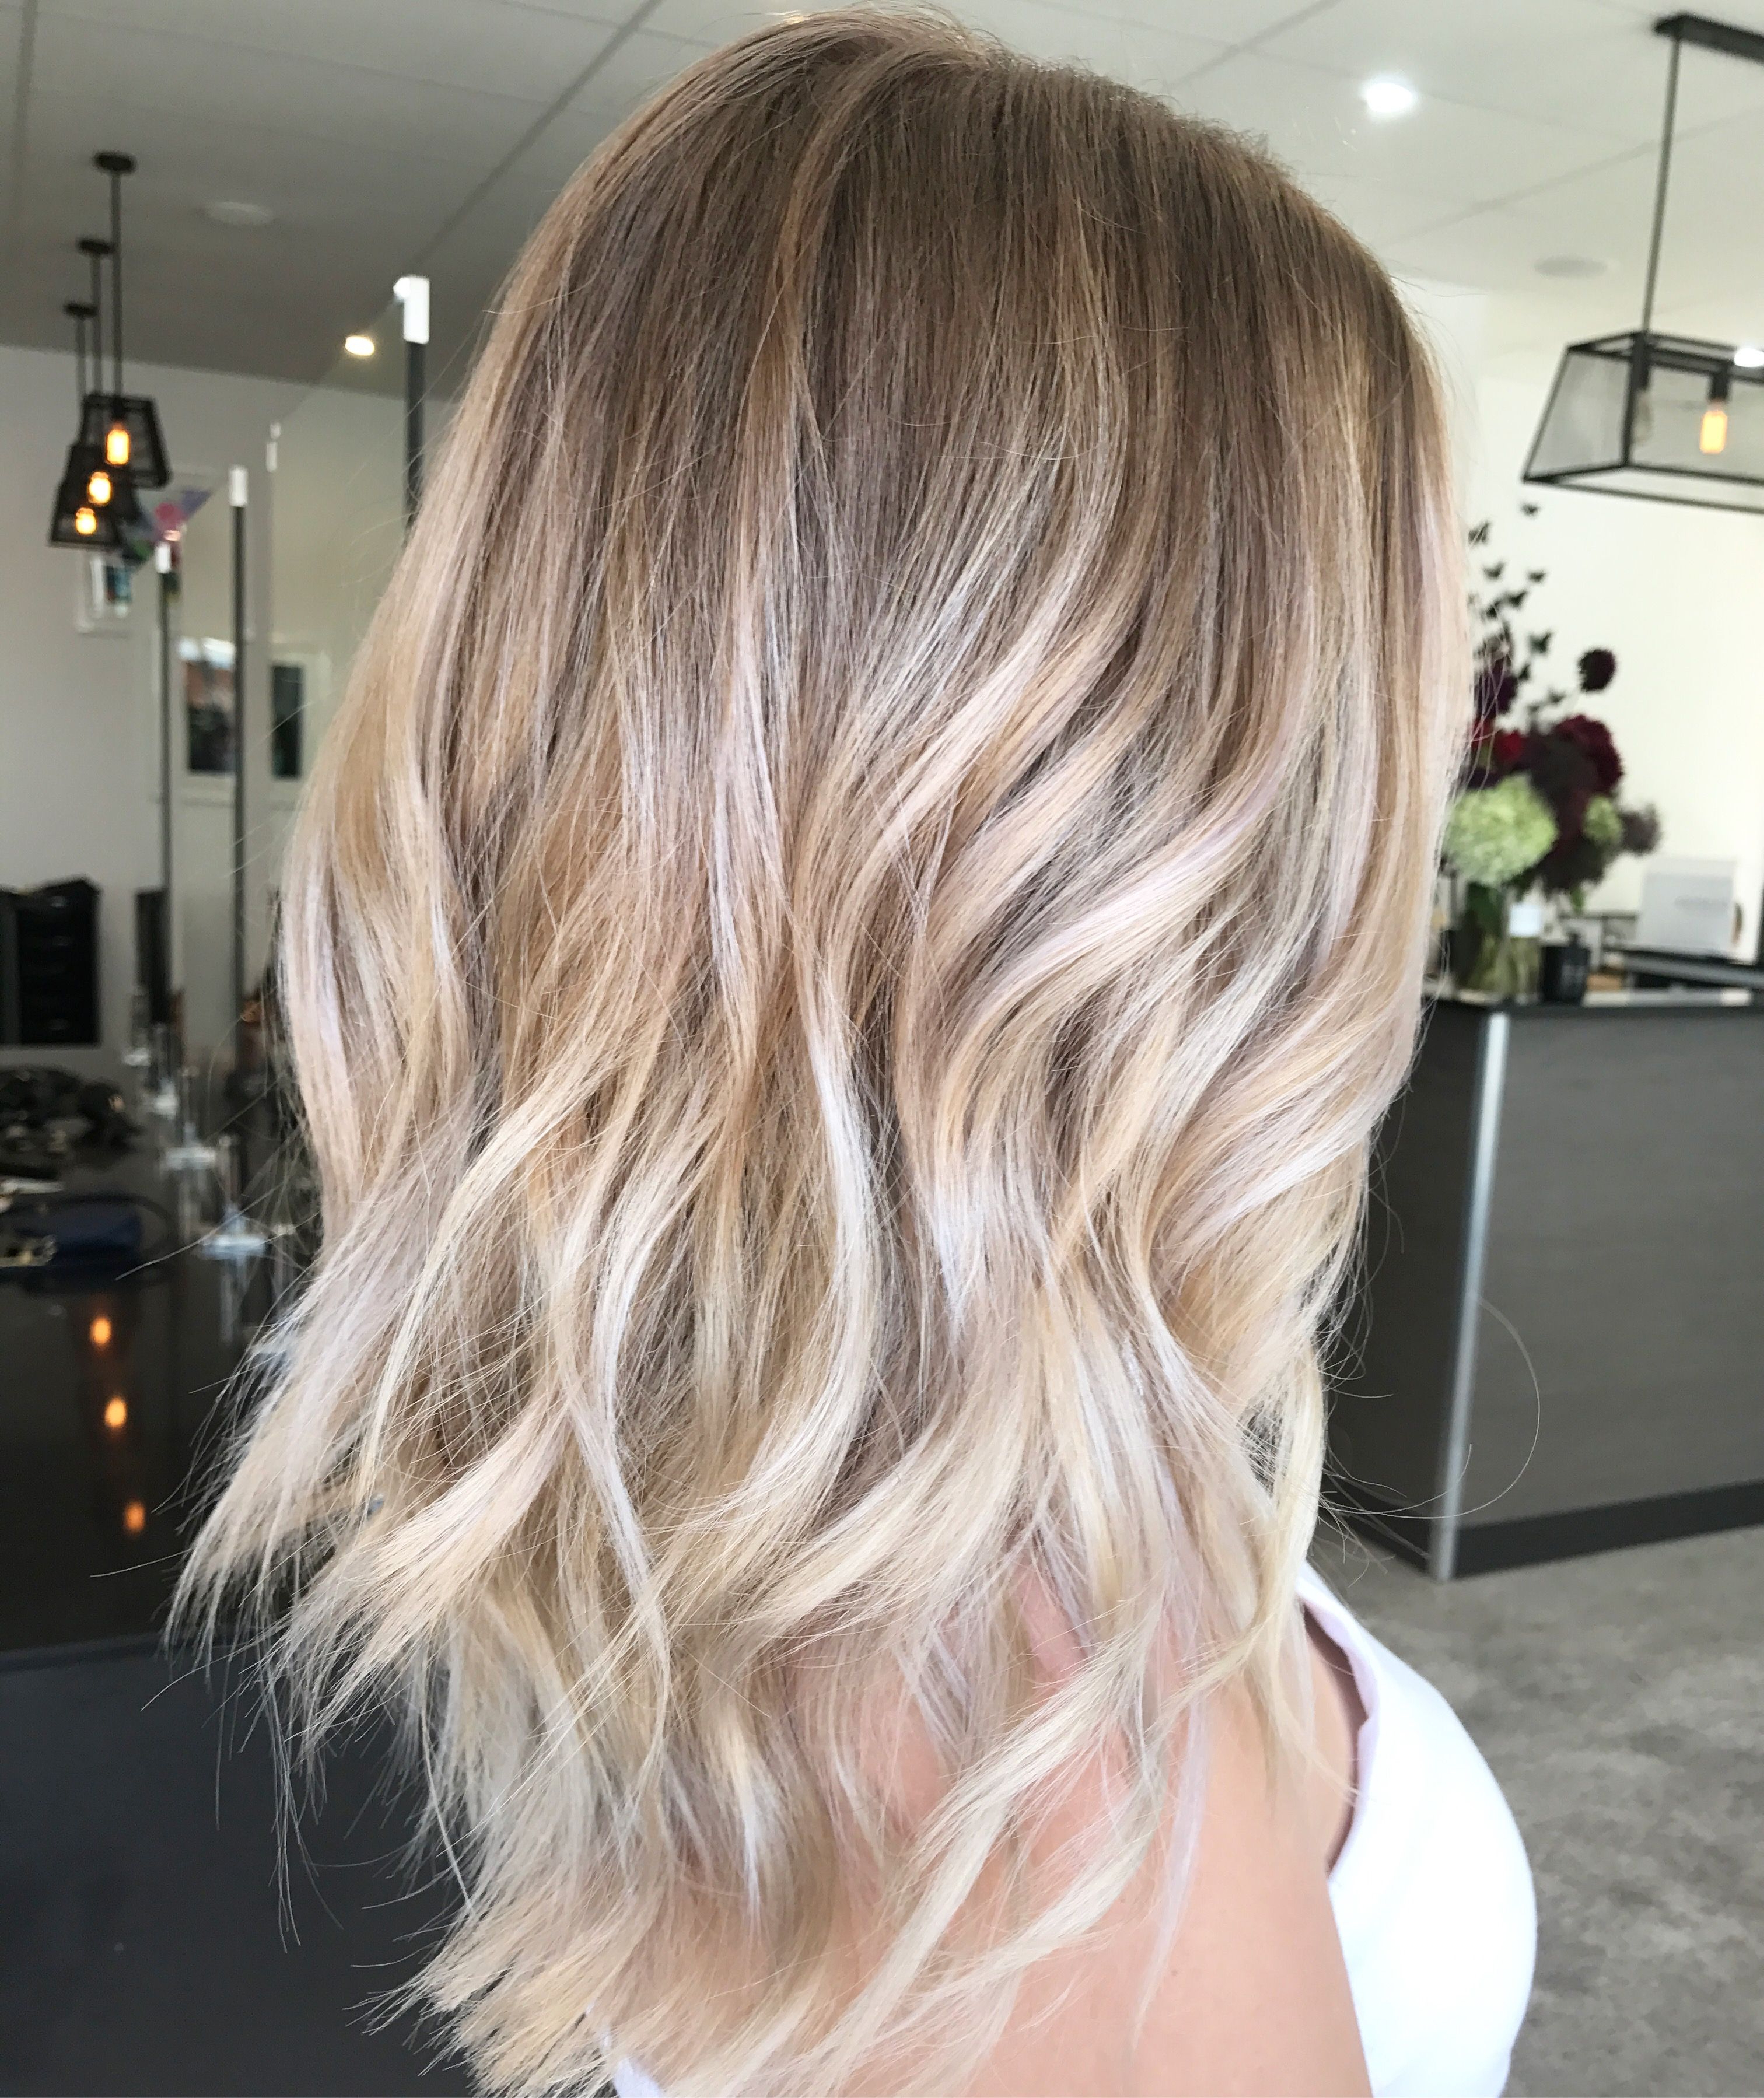 Pinlynn Taylor On Casual Hairstyles In 2018 | Pinterest | Hair Intended For Angelic Blonde Balayage Bob Hairstyles With Curls (View 2 of 25)